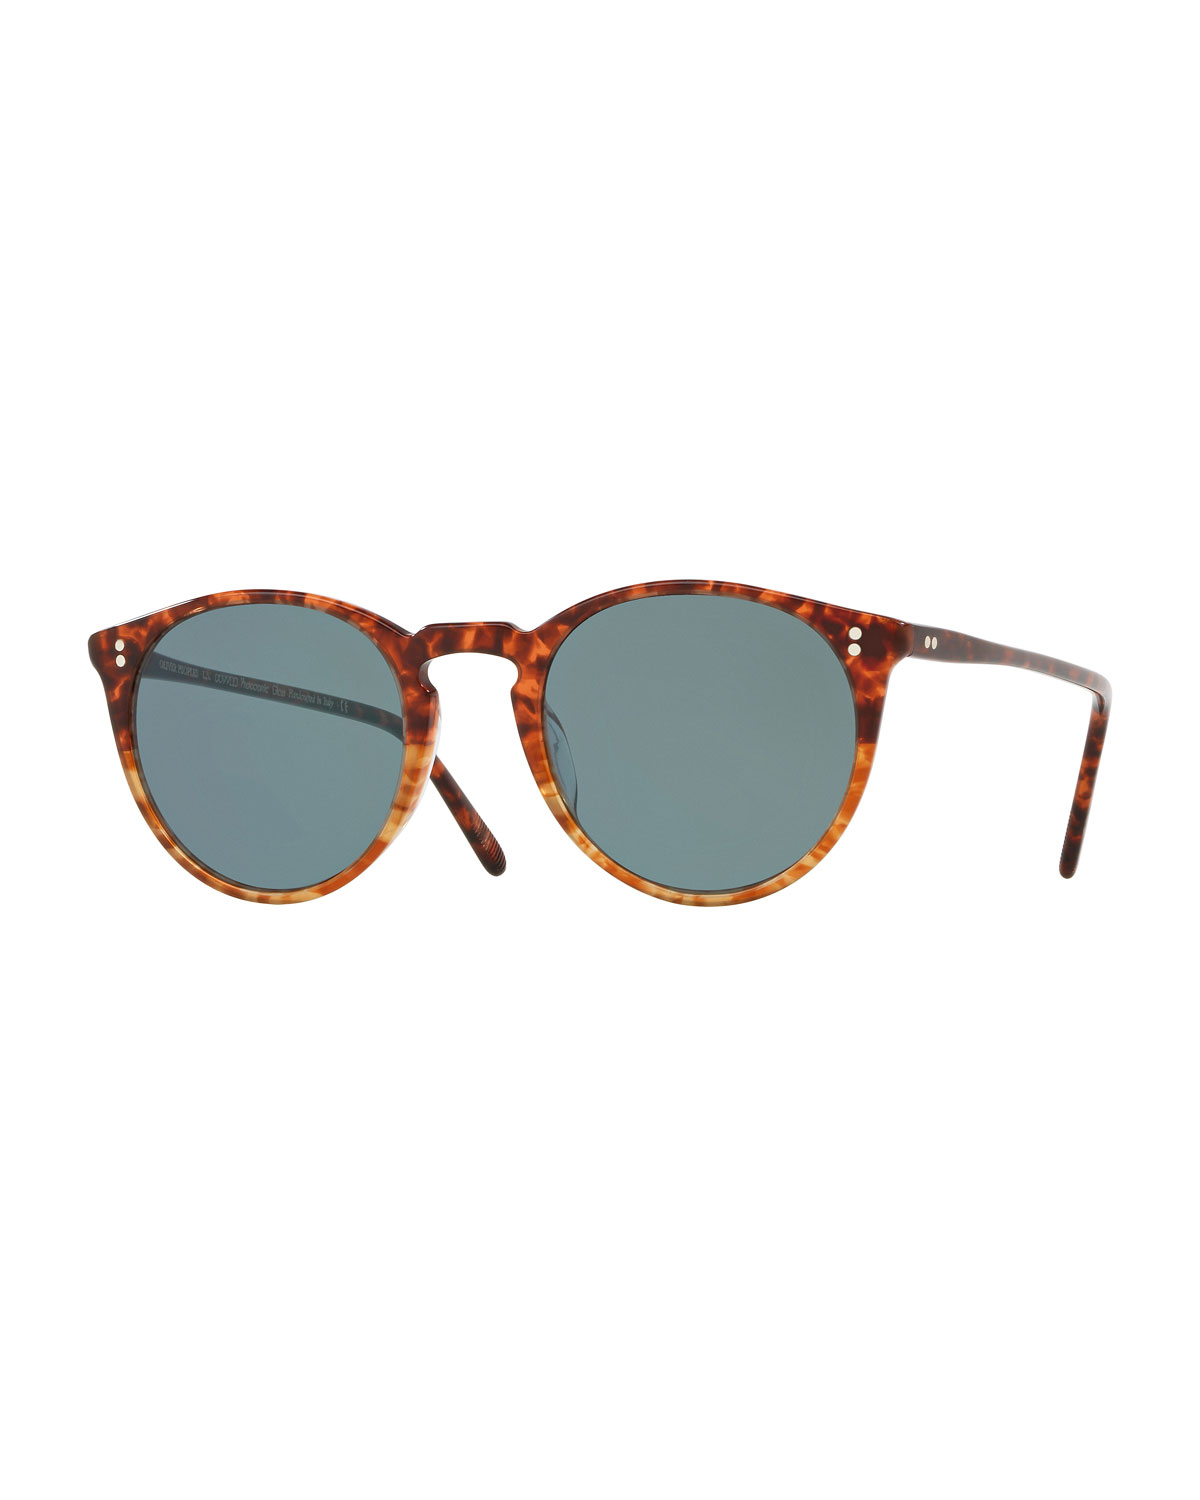 5dfb9cb9837 Oliver Peoples O Malley Peaked Round Photochromic Sunglasses ...